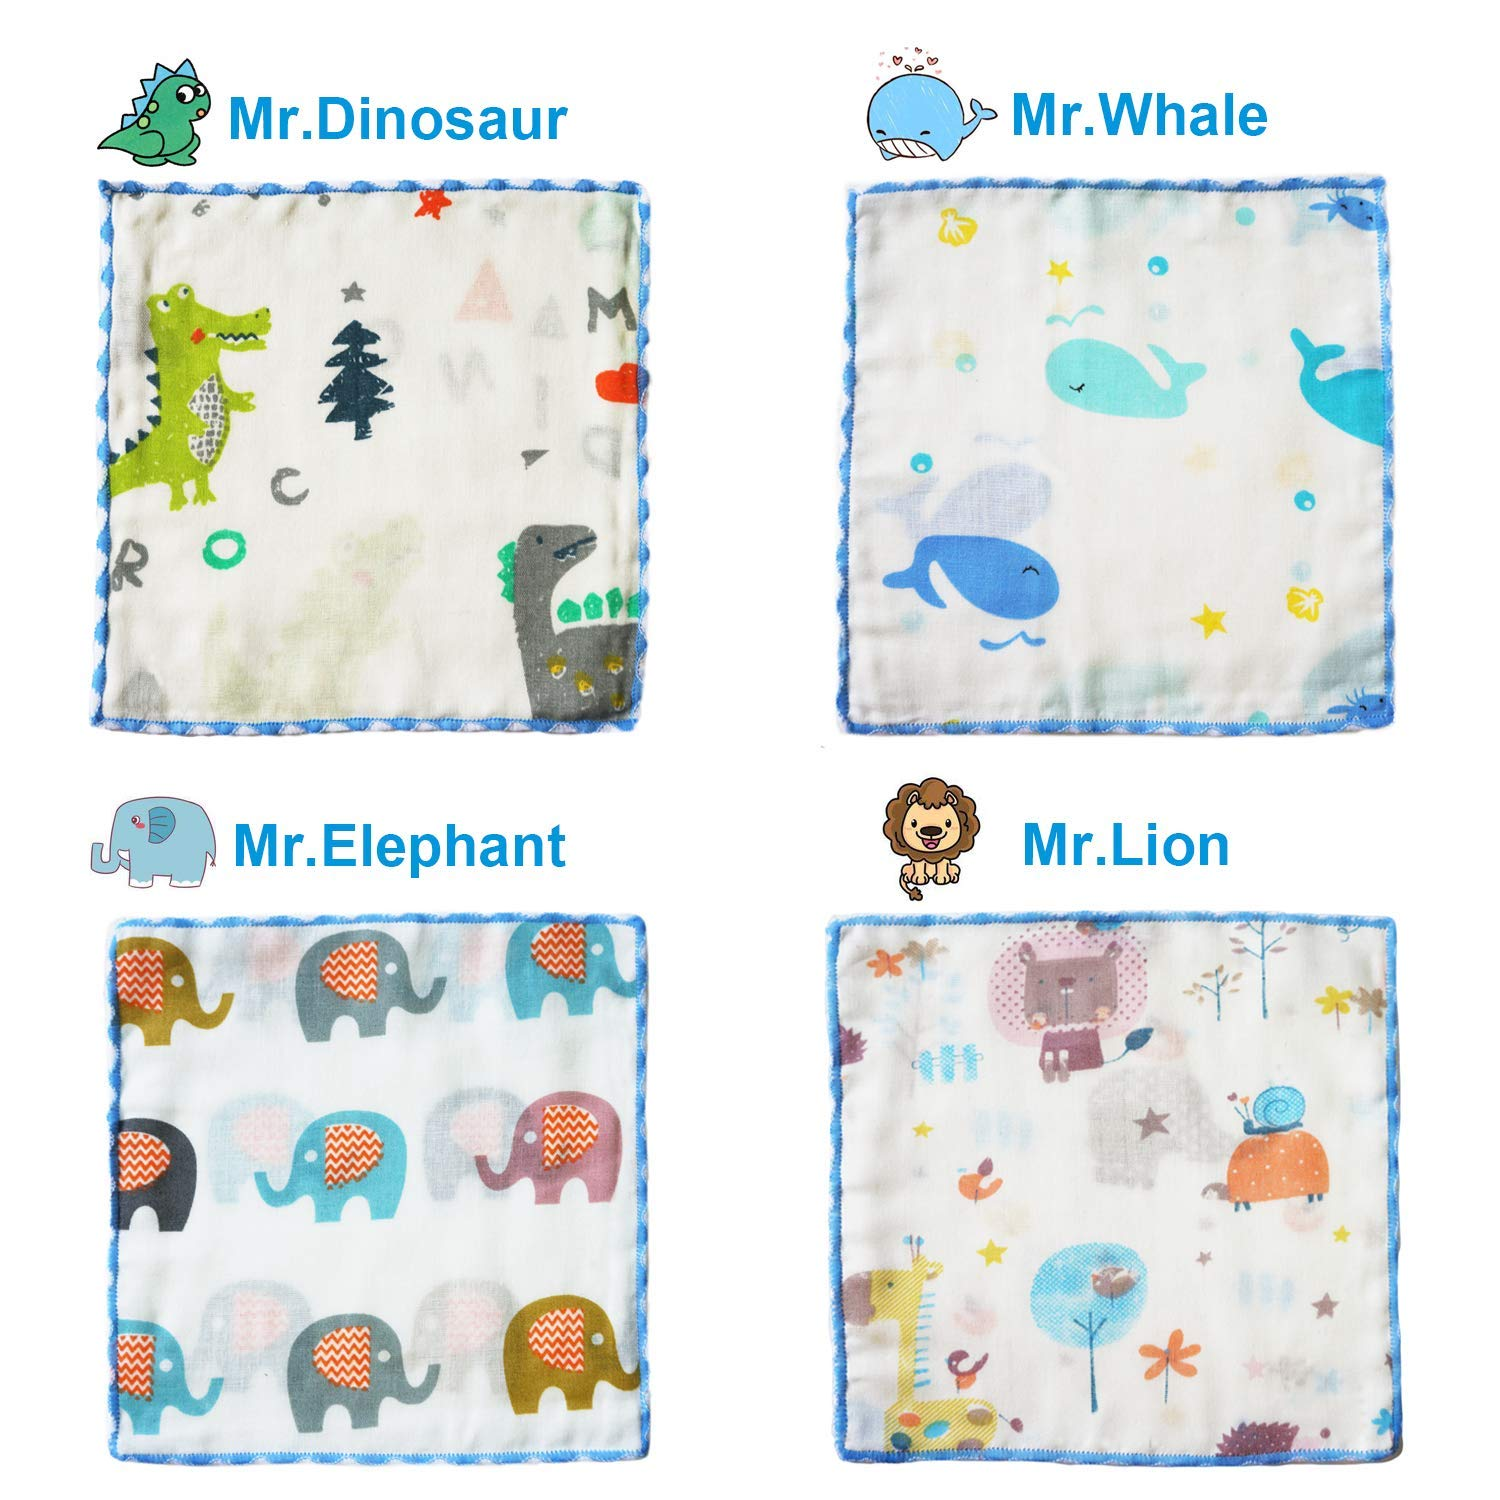 6 Pack Baby Washcloths 9x9 Inches Natural Muslin Cotton Newborn Baby Face Towel Perfect Shower Gifts Set Animal Party